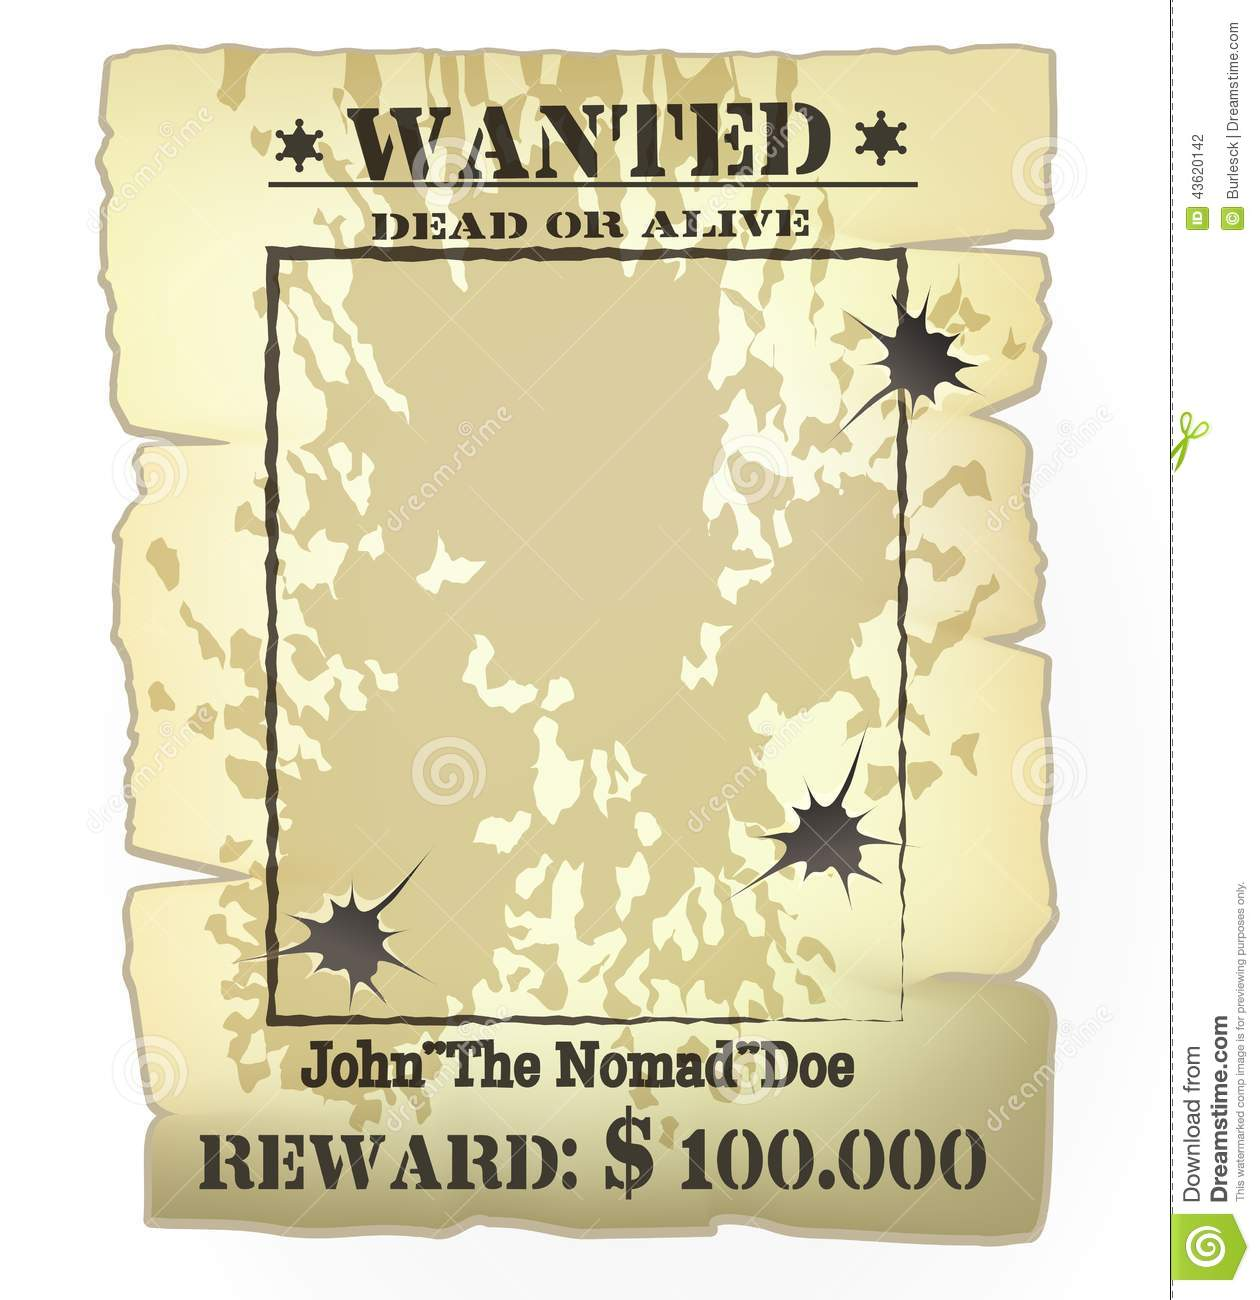 Western wanted poster stock vector. Illustration of blank - 43620142